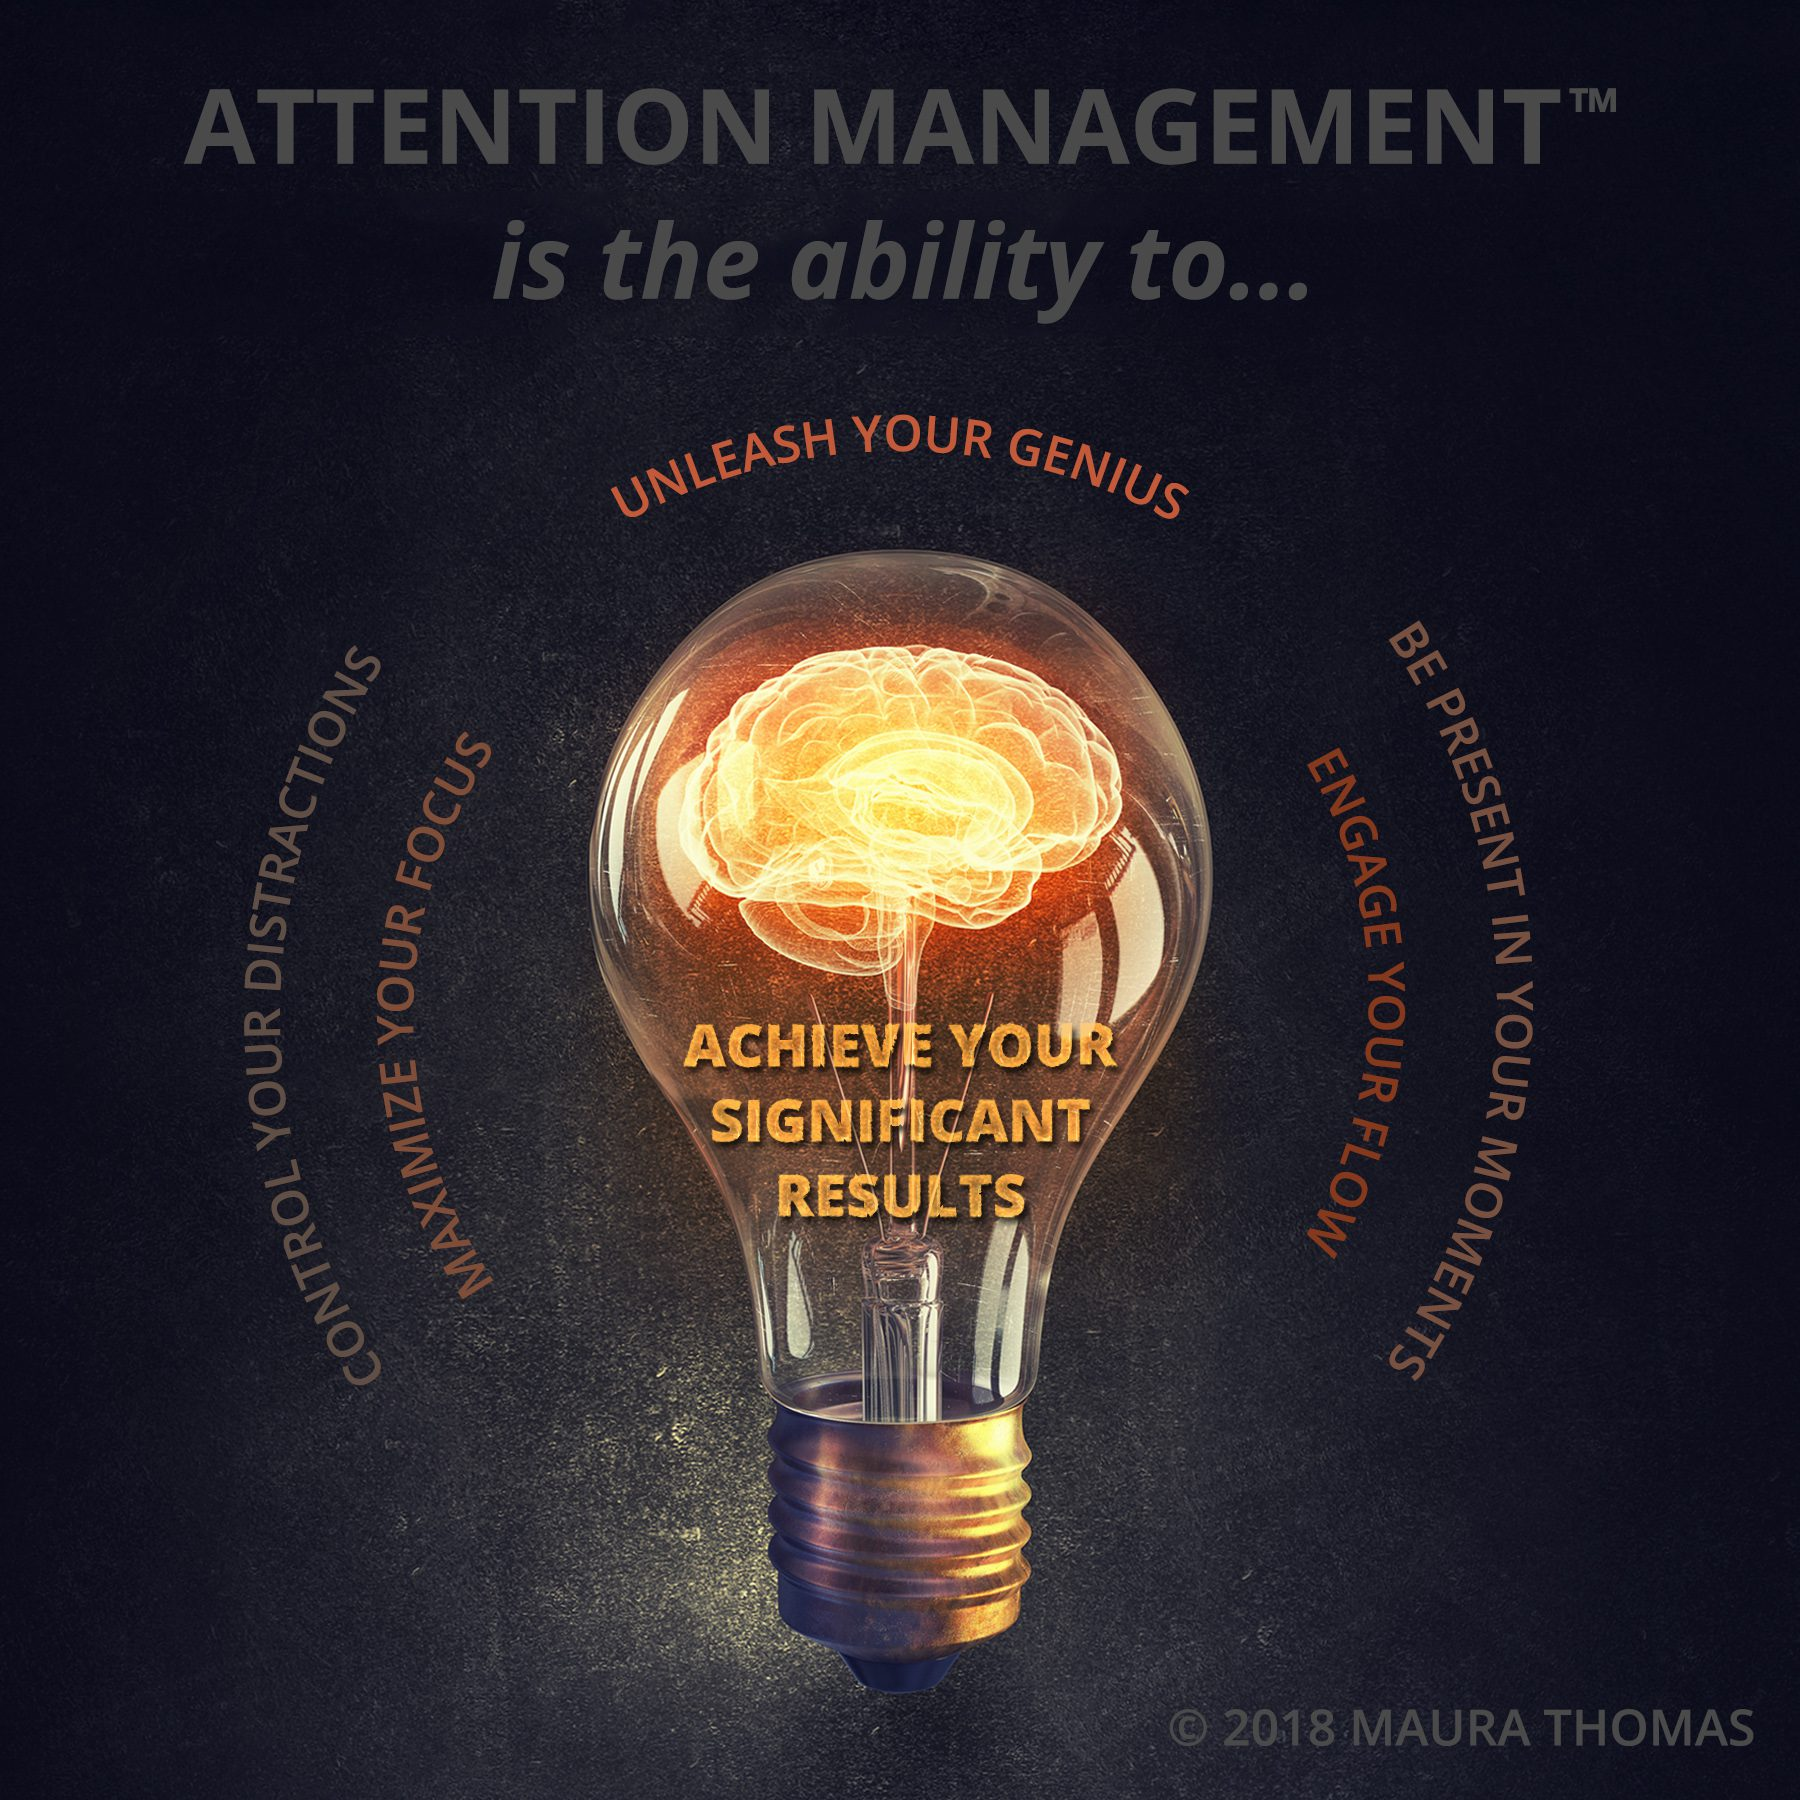 Attention management definition from Maura Thomas